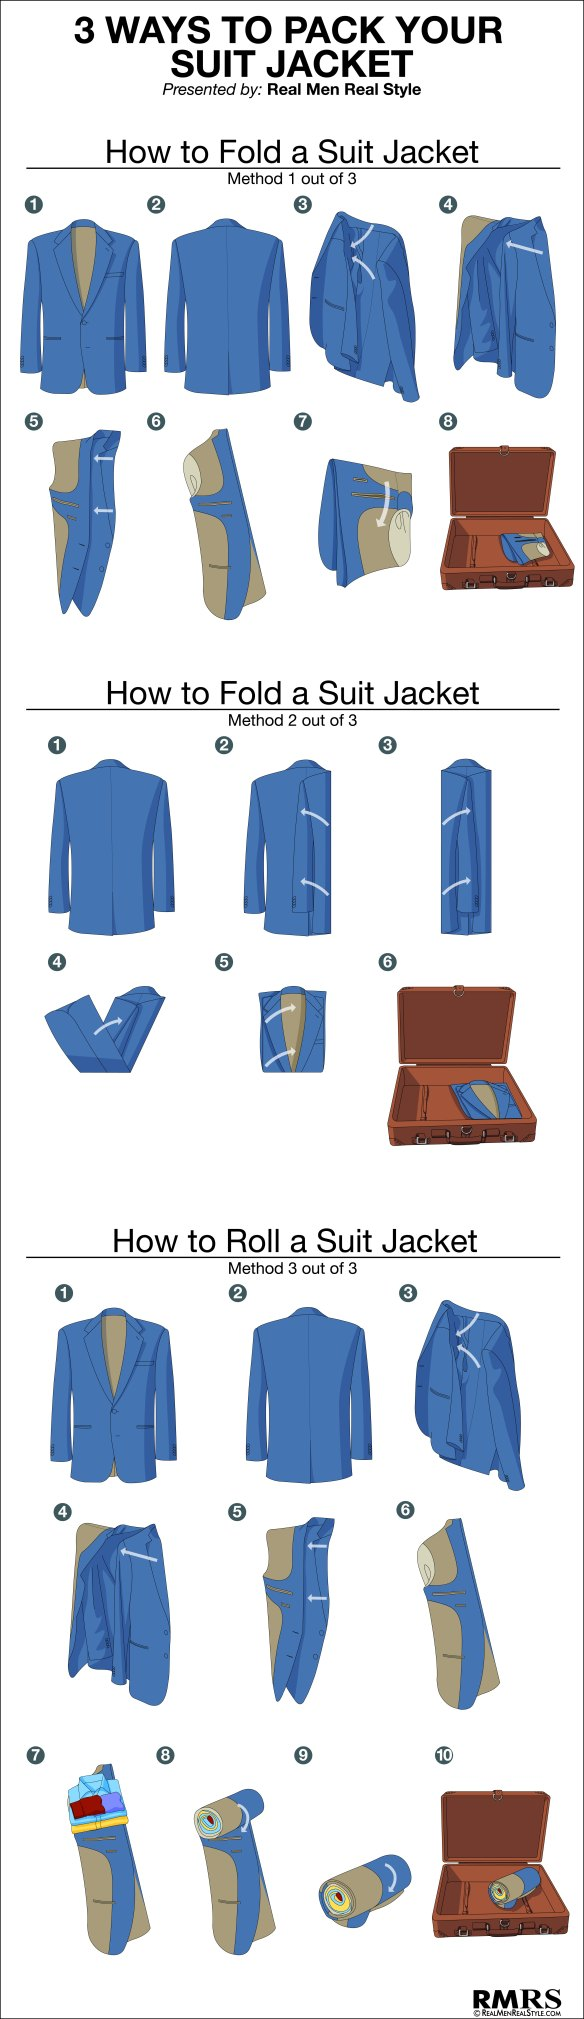 3 ways to fold jacket.jpg